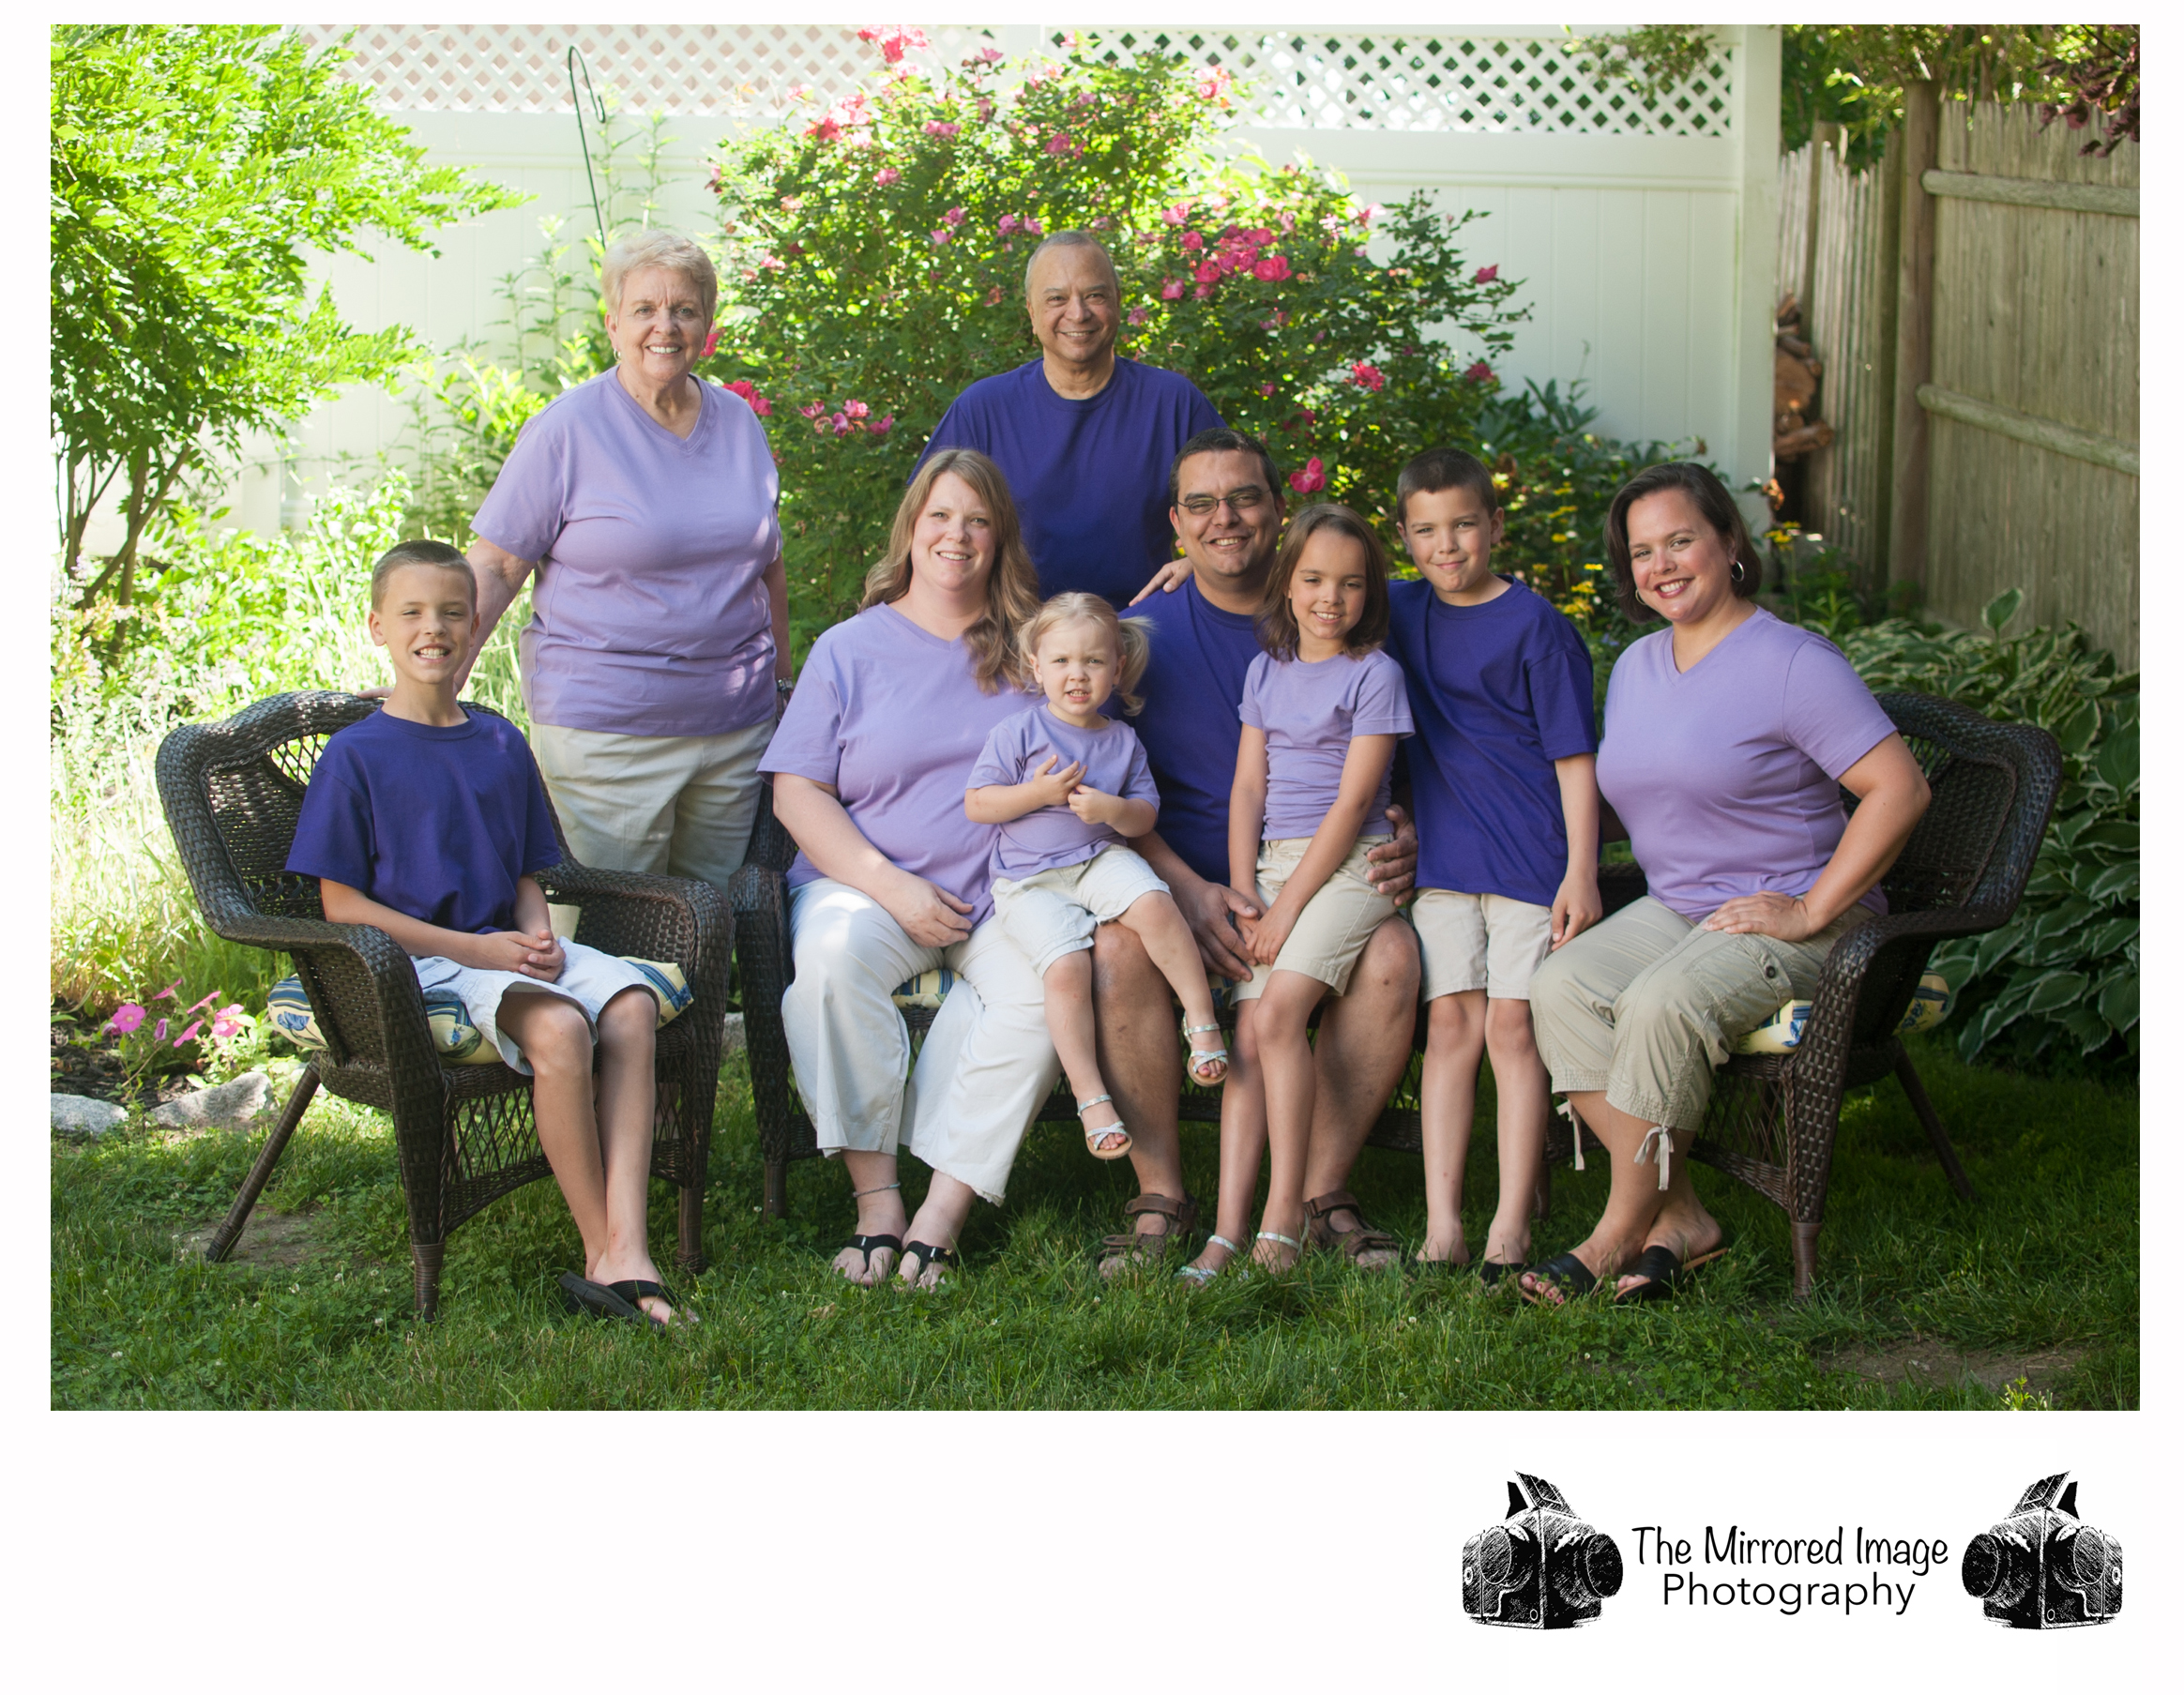 Family Photos, Family Photography, Professional Photographer, Plymouth, South Shore, Family Photo Shoot, Lifestyle Photography,